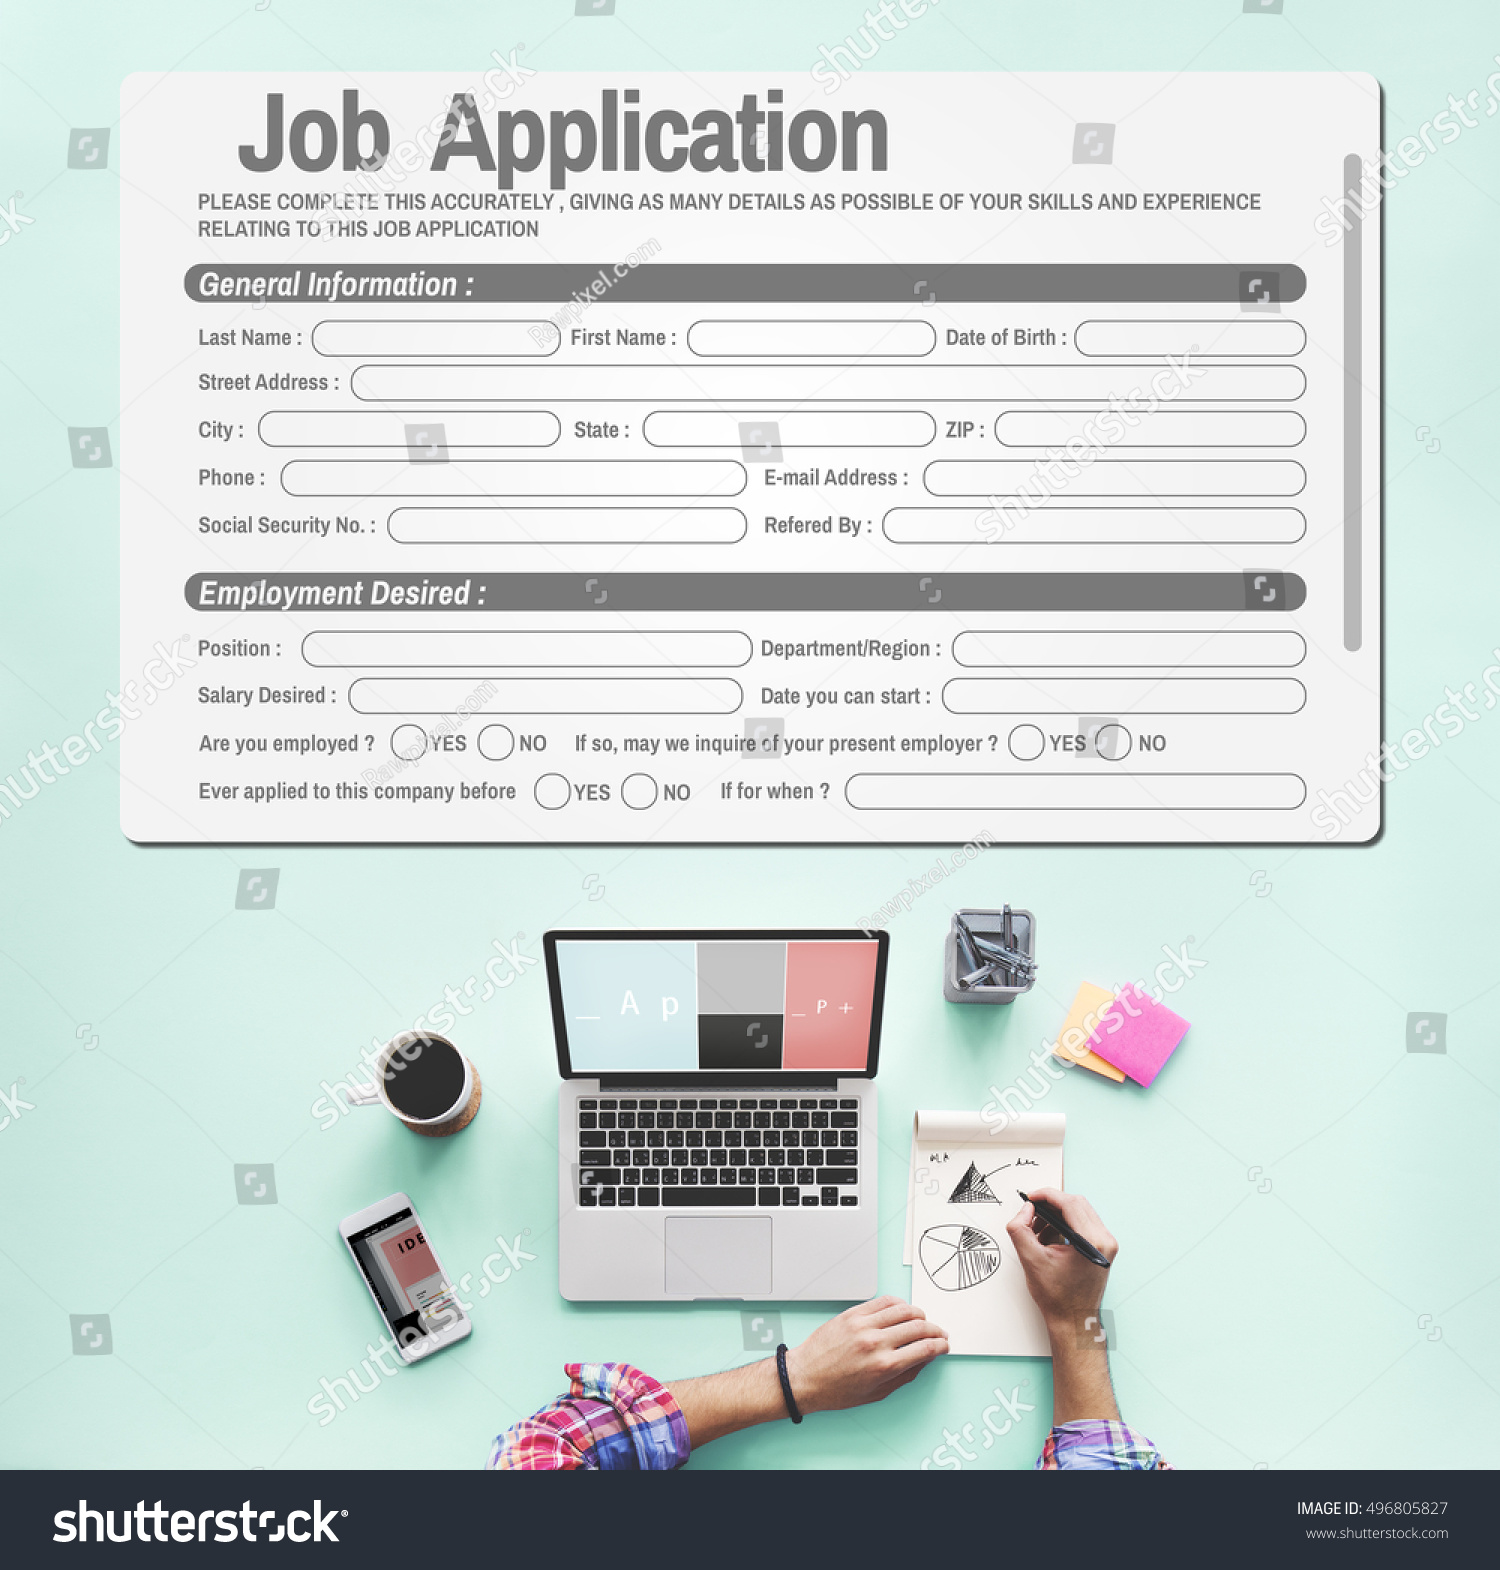 Online Web Job Application Form Concept Stock Photo (Edit Now ...